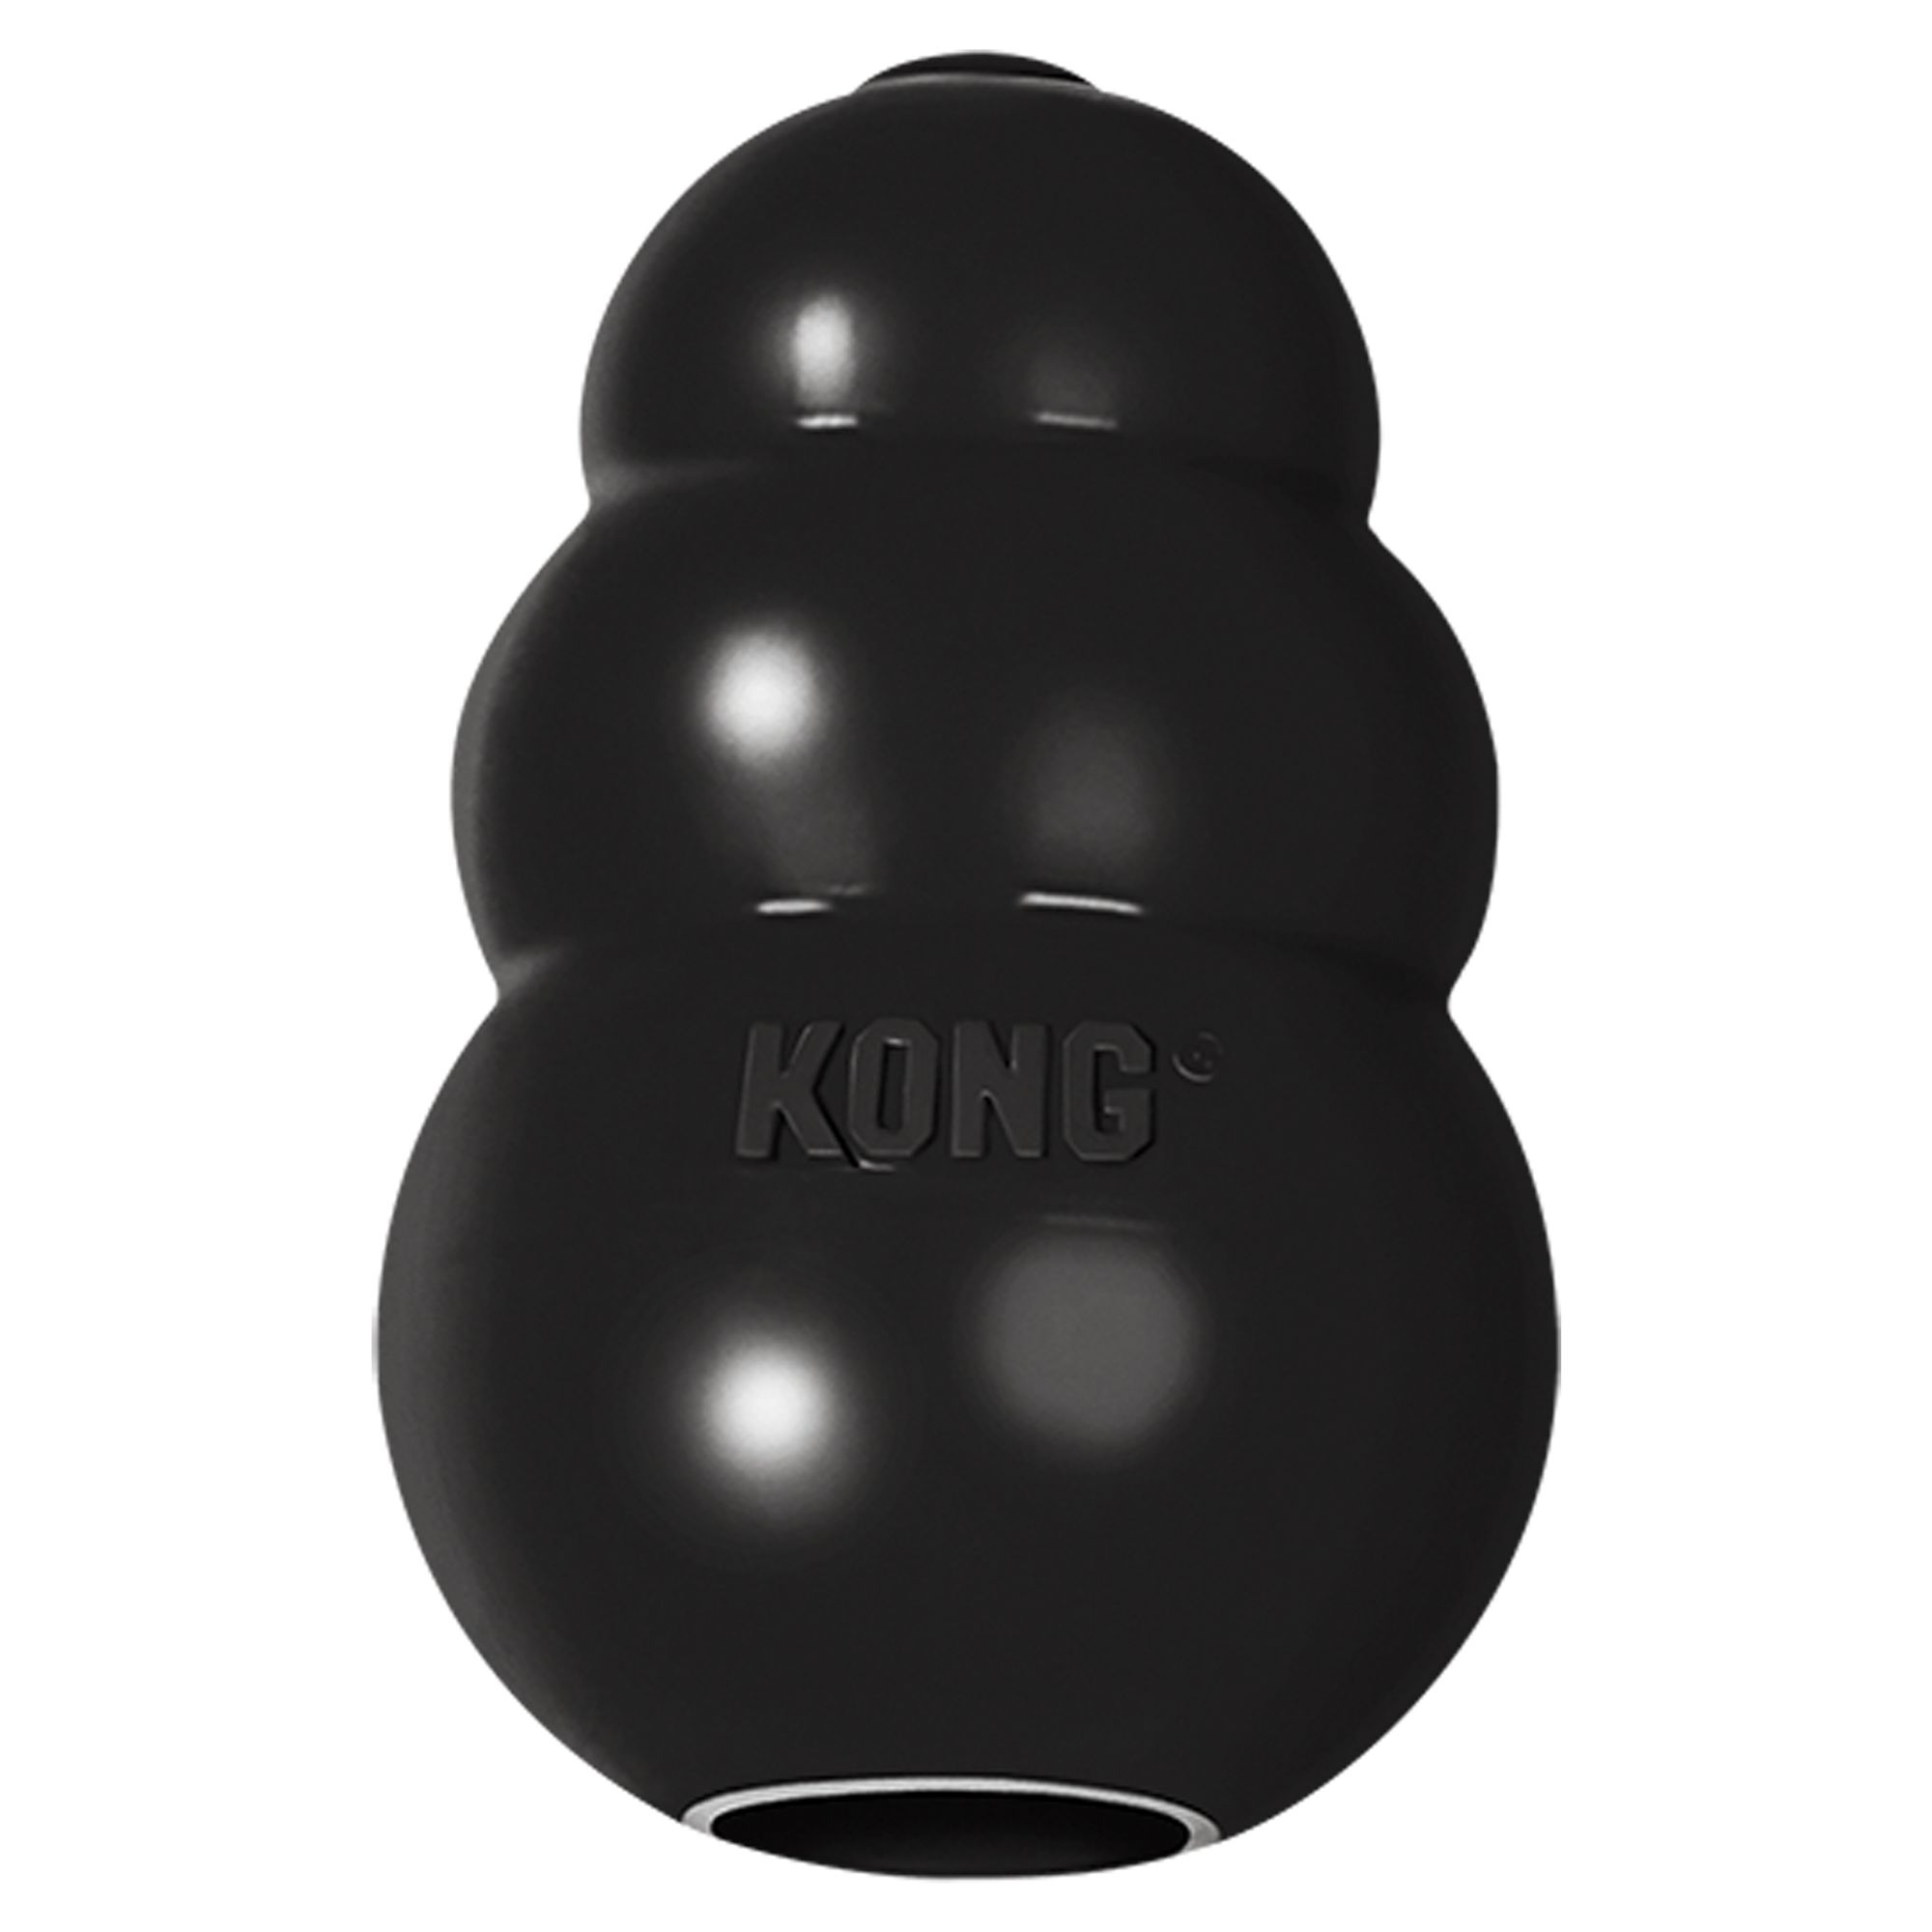 Kong Extreme Dog Toy -Treat Dispensing size: Large, Black 1811627